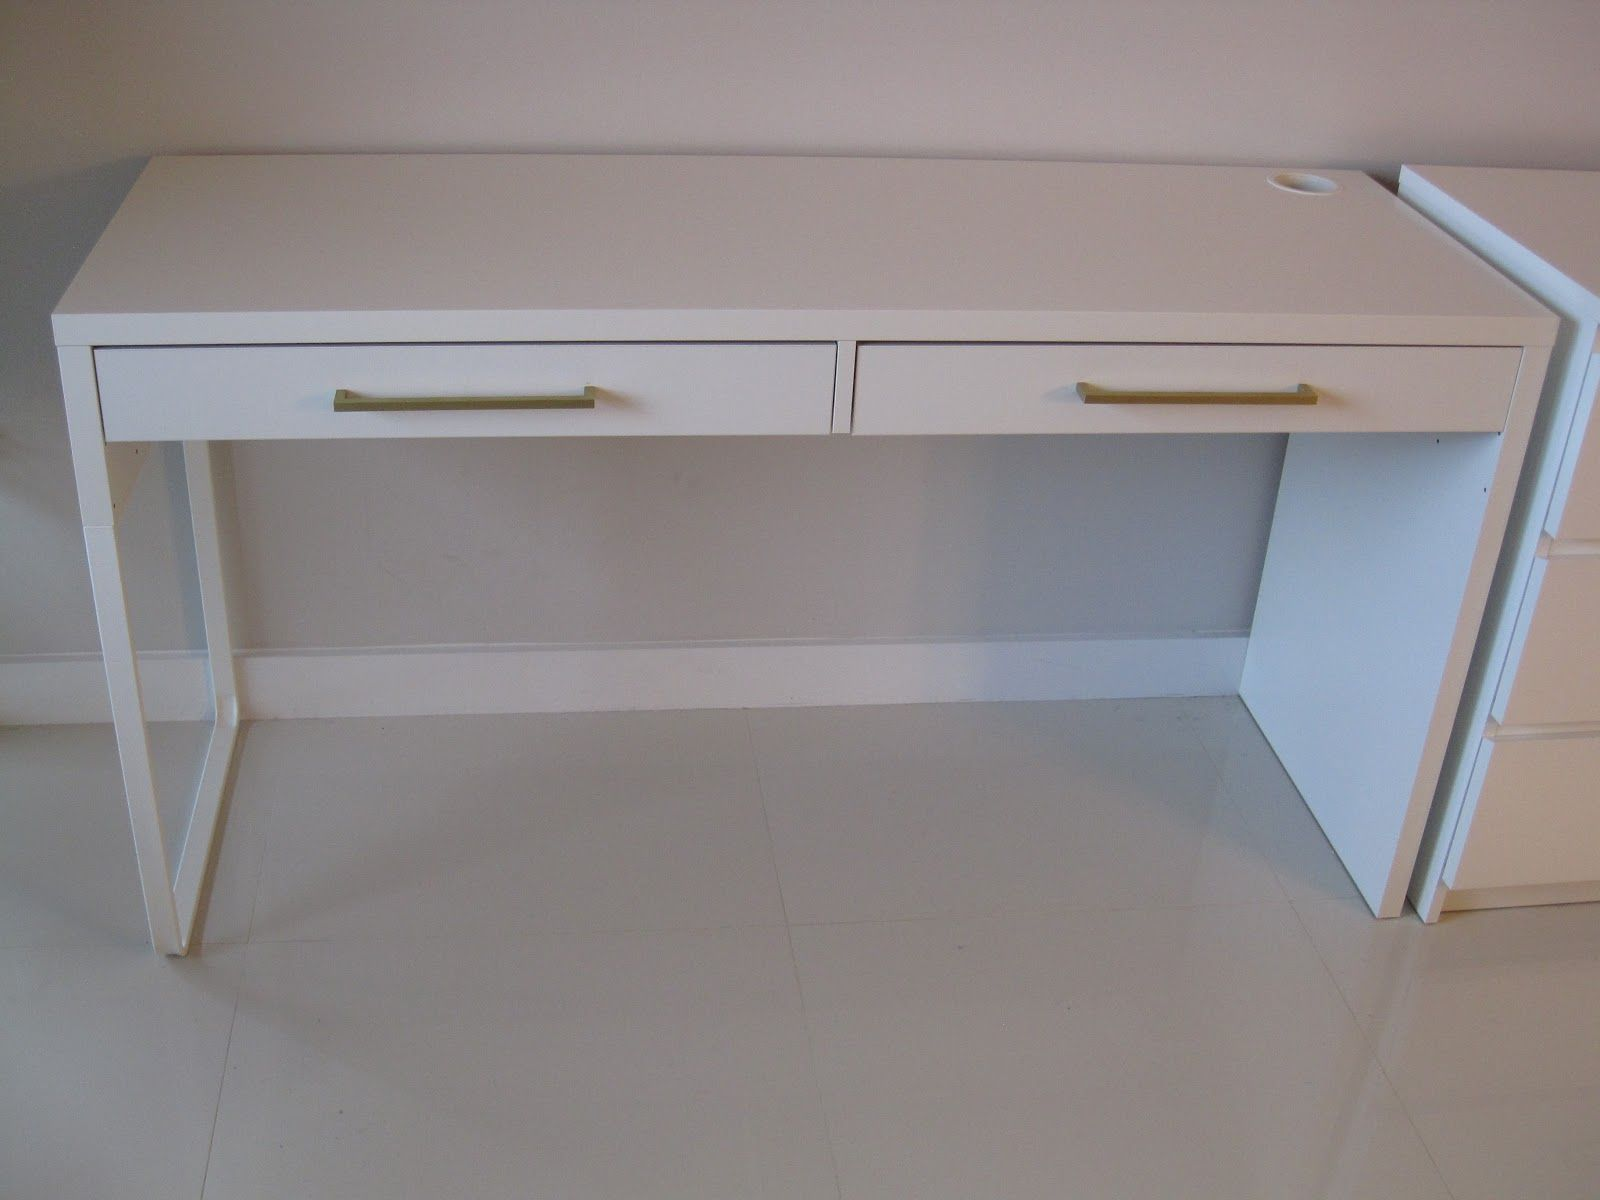 Ikea micke desk hack google . consider adding drawer pulls in